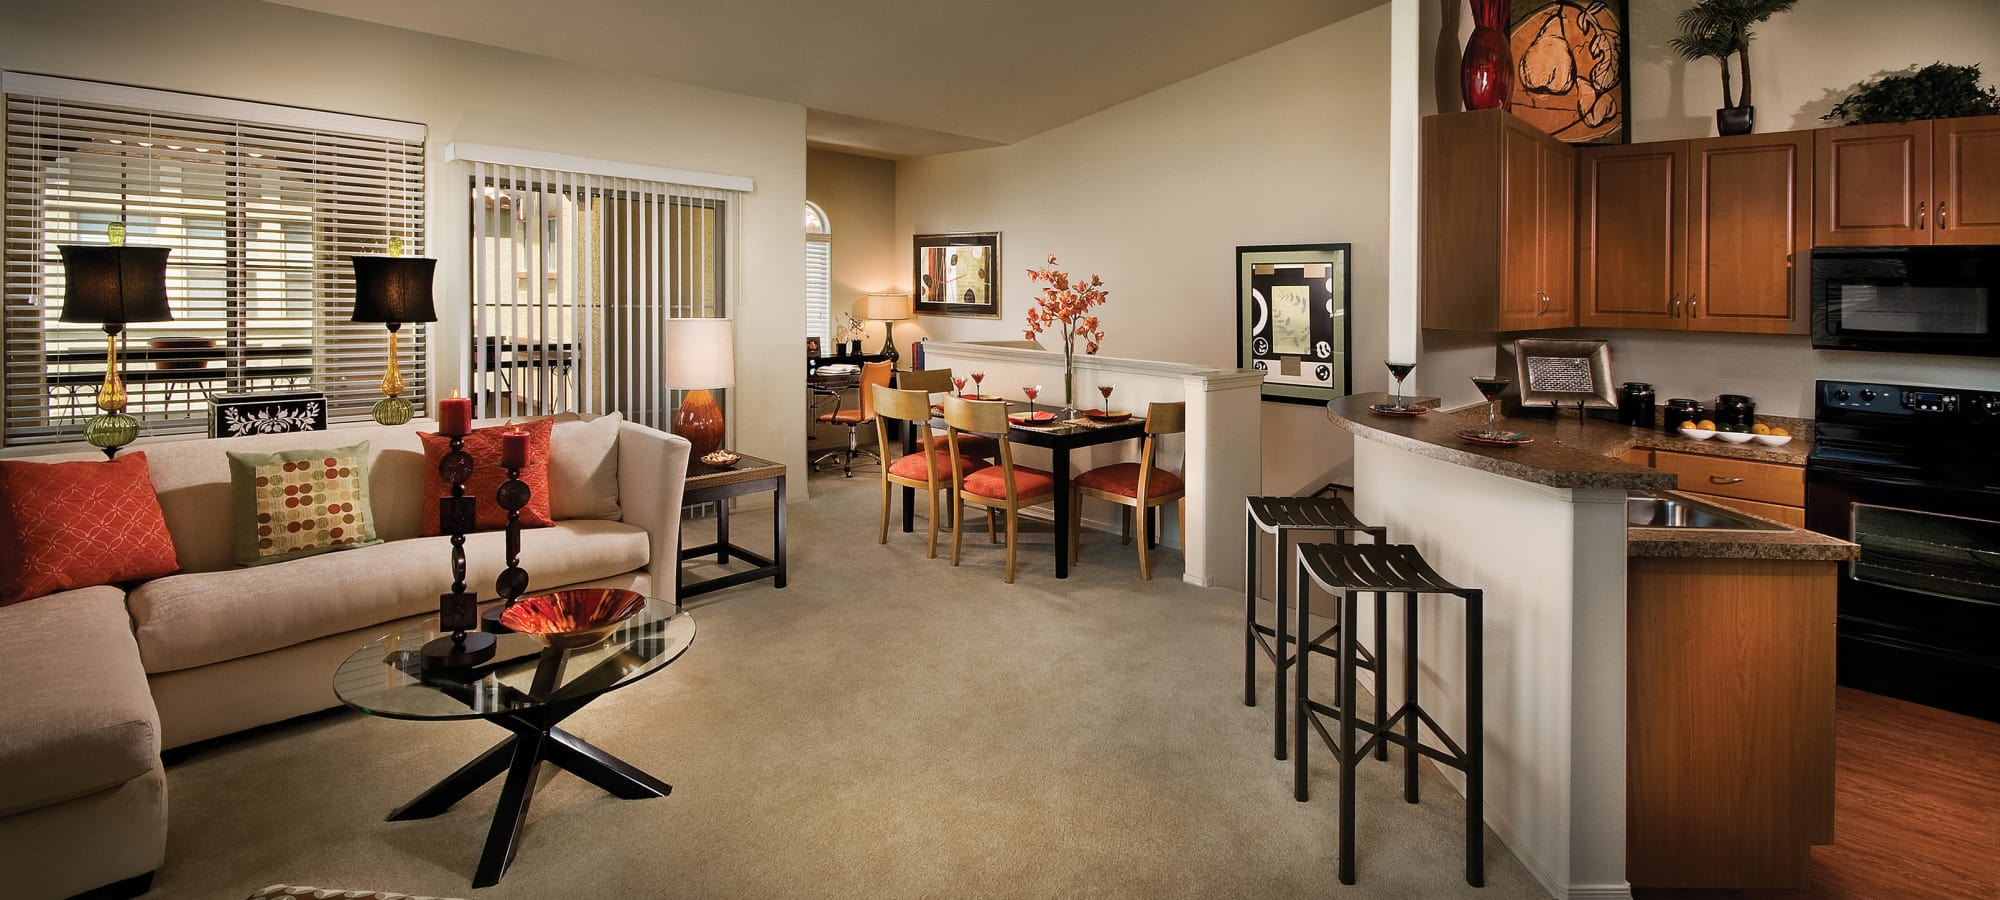 Spacious living room in model home at Ravenwood Heights in Tempe, Arizona